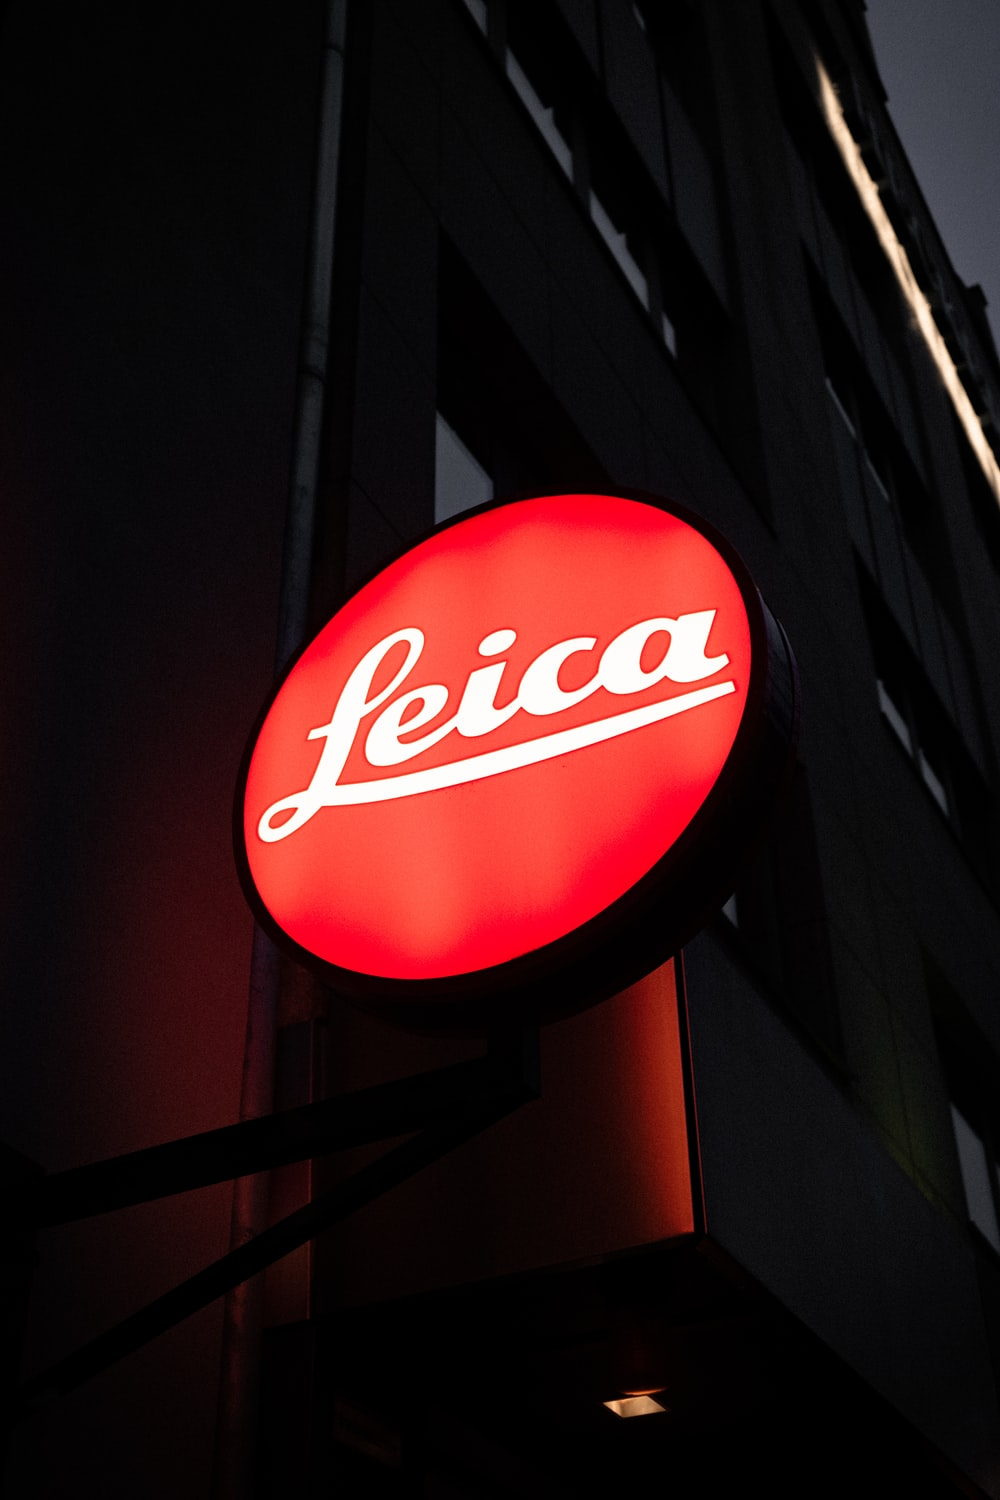 Leica lighted signage